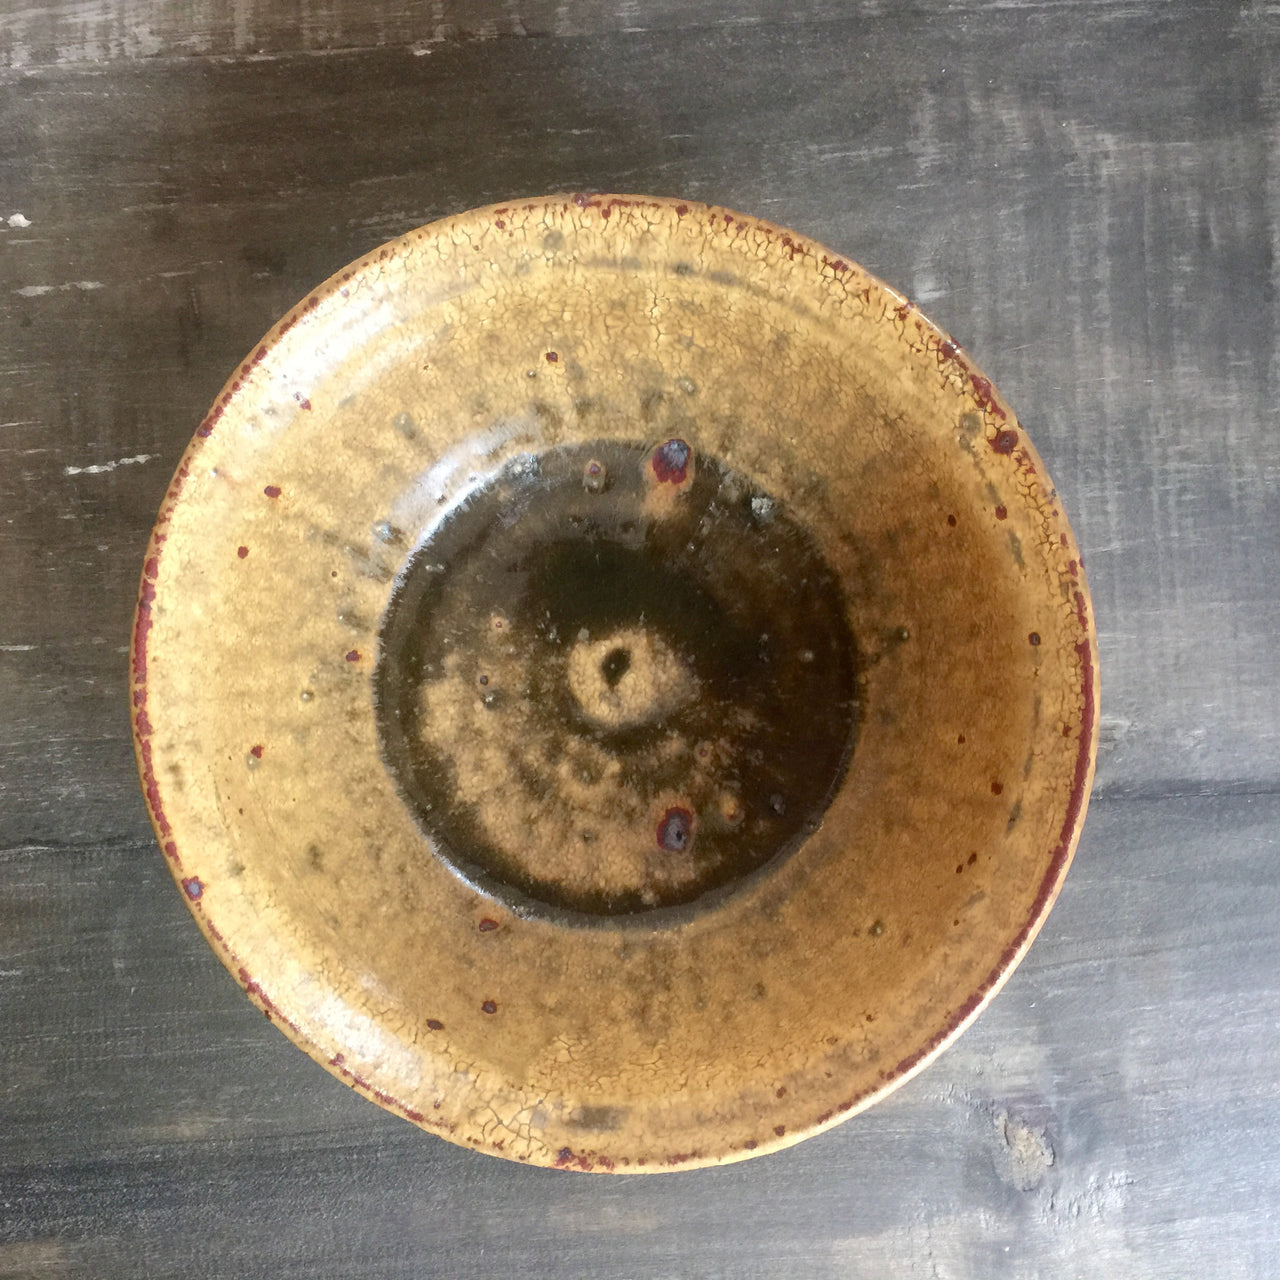 Big Bowls from Japan